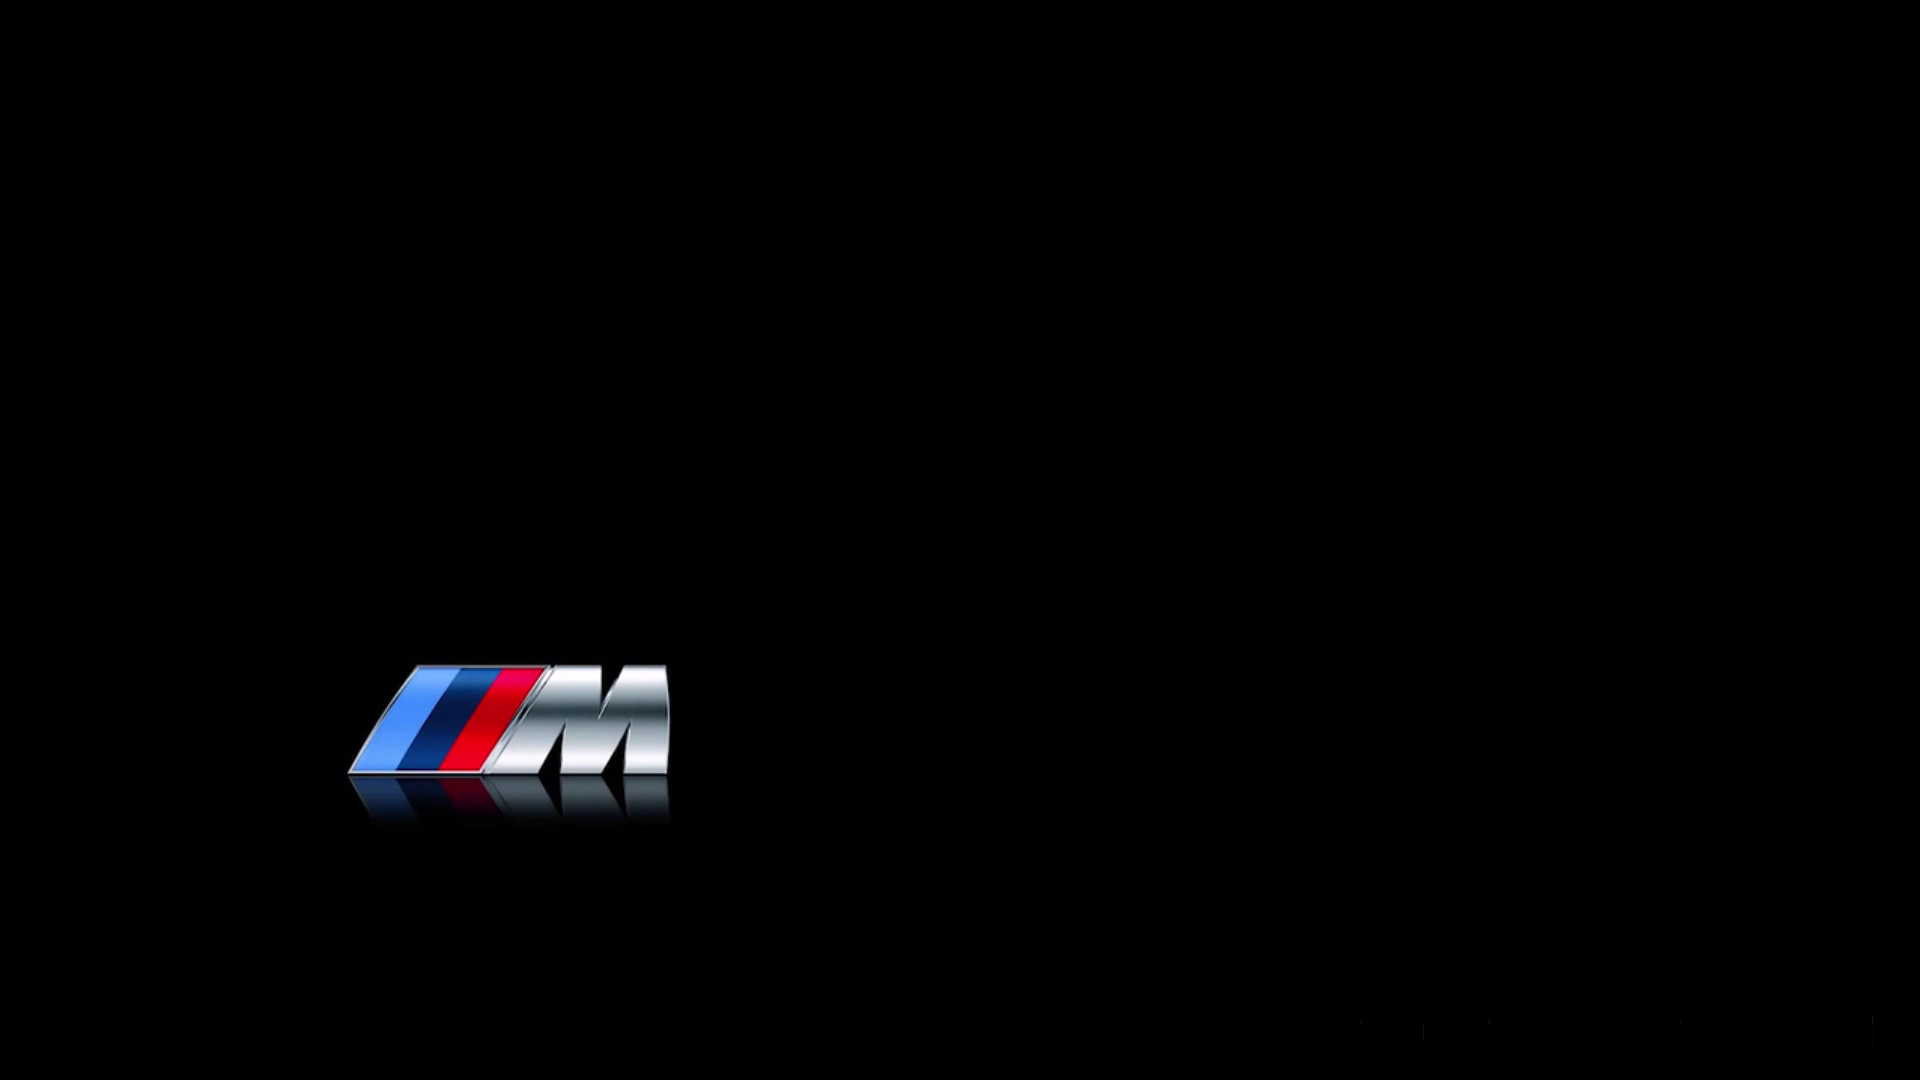 Images For Bmw M Logo Wallpaper Hd 1920x1080